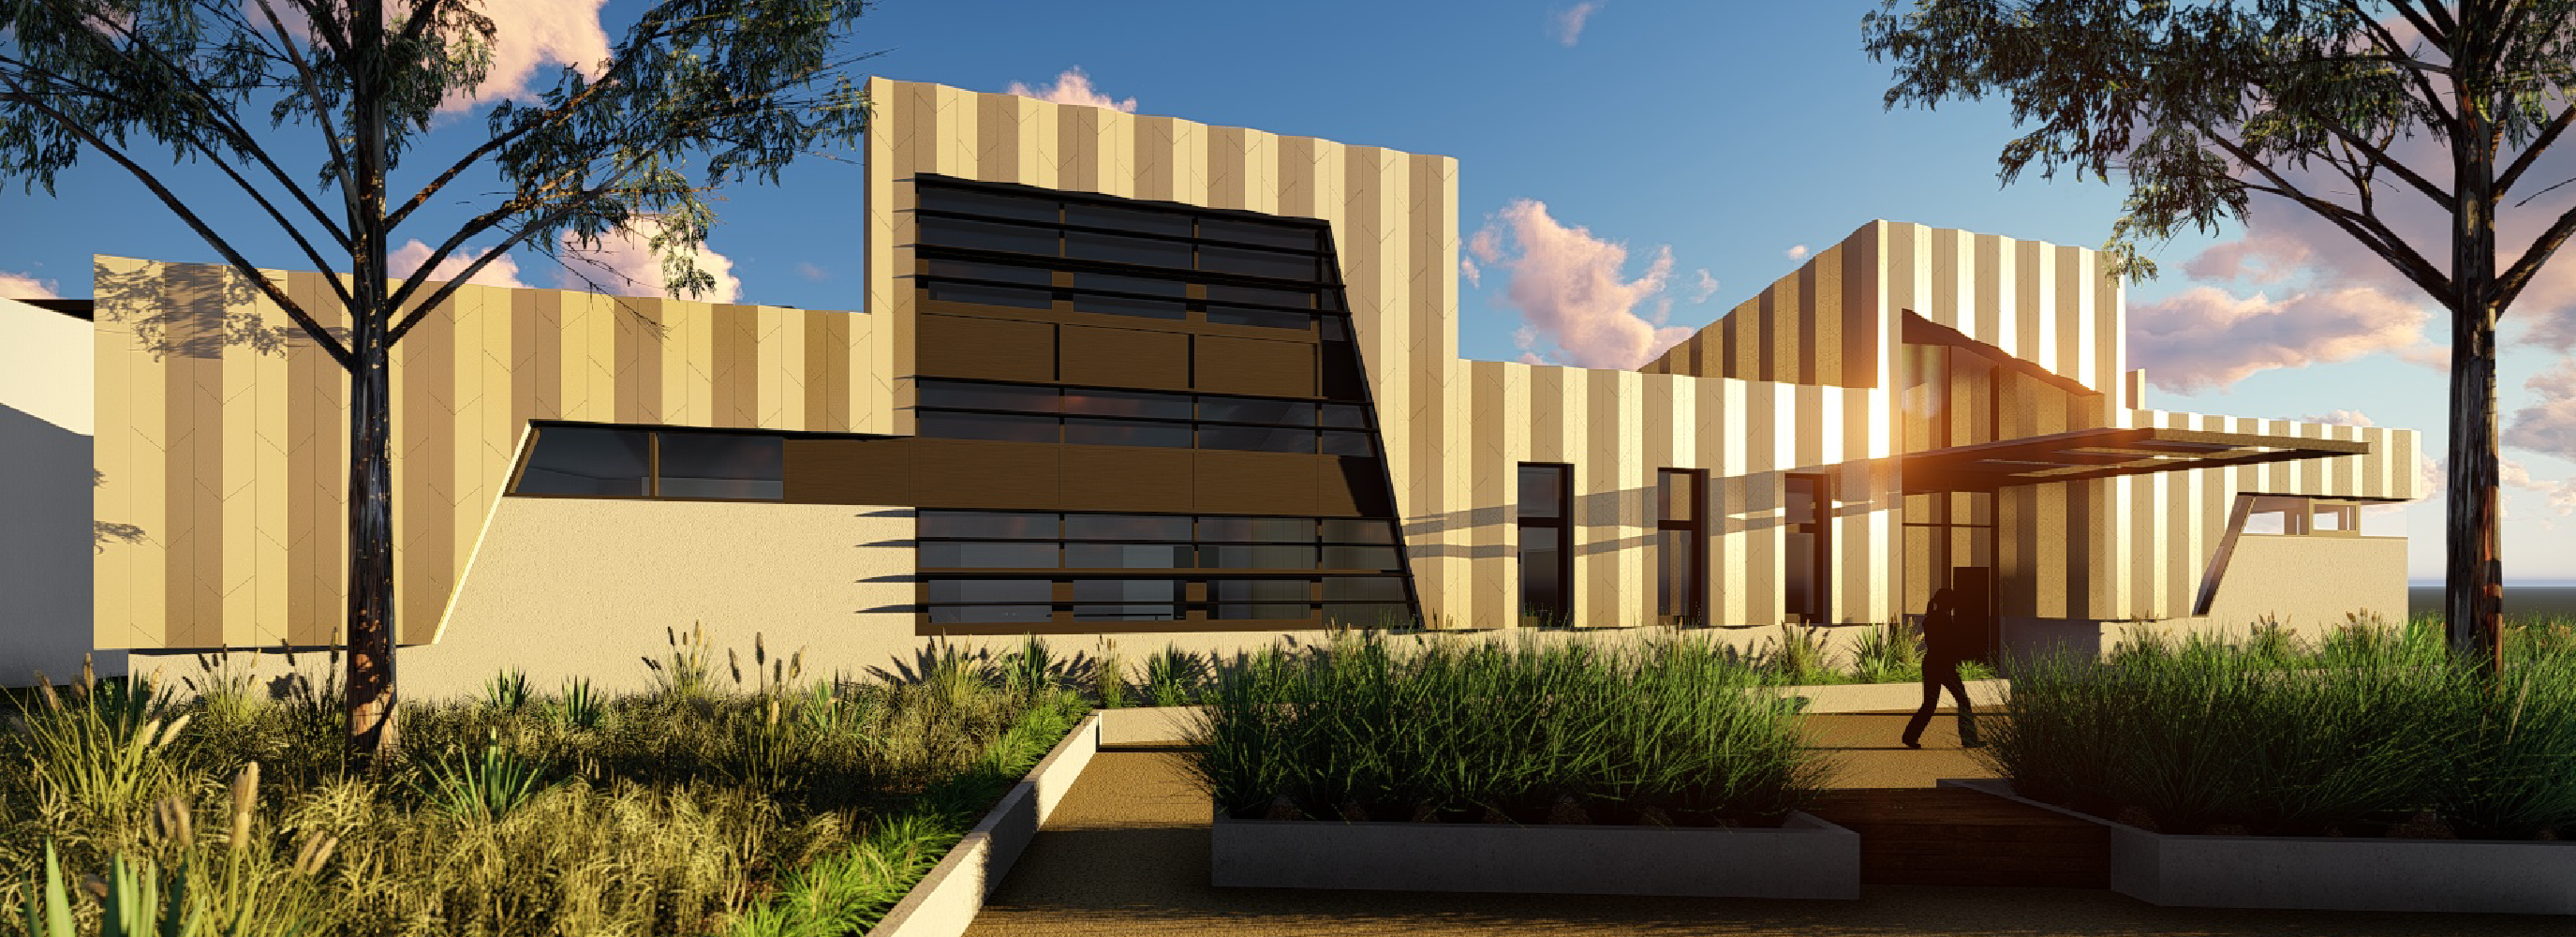 Cardinia Cultural Centre upgrade